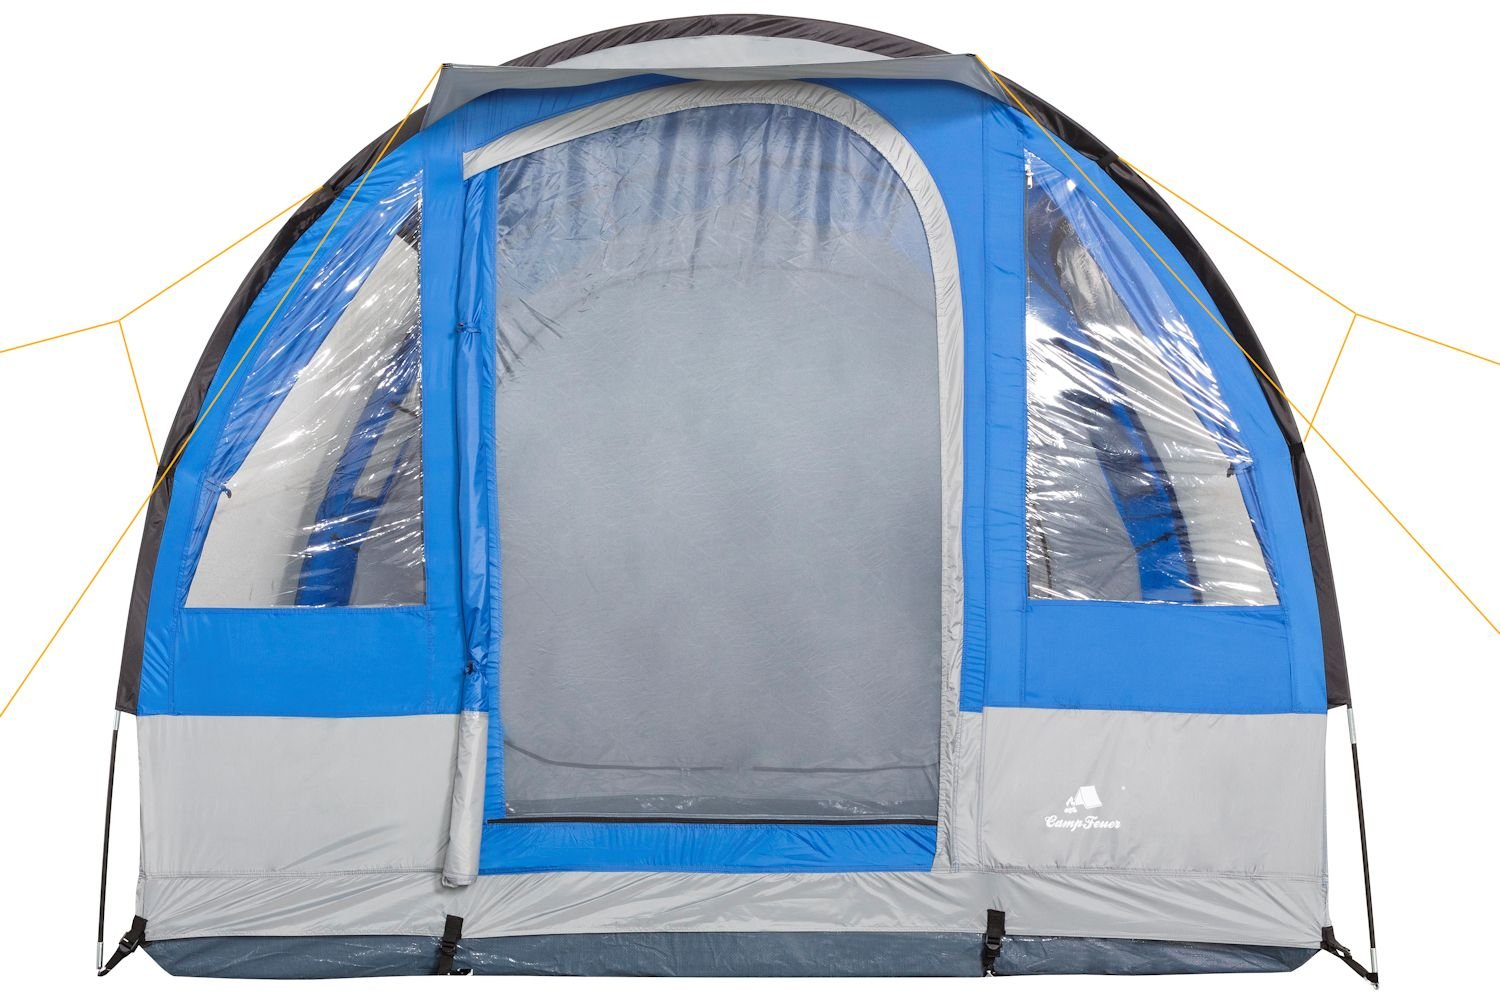 CampFeuer - Tunnel Tent, 4 Person, 410x250x190 cm, blue/grey 4